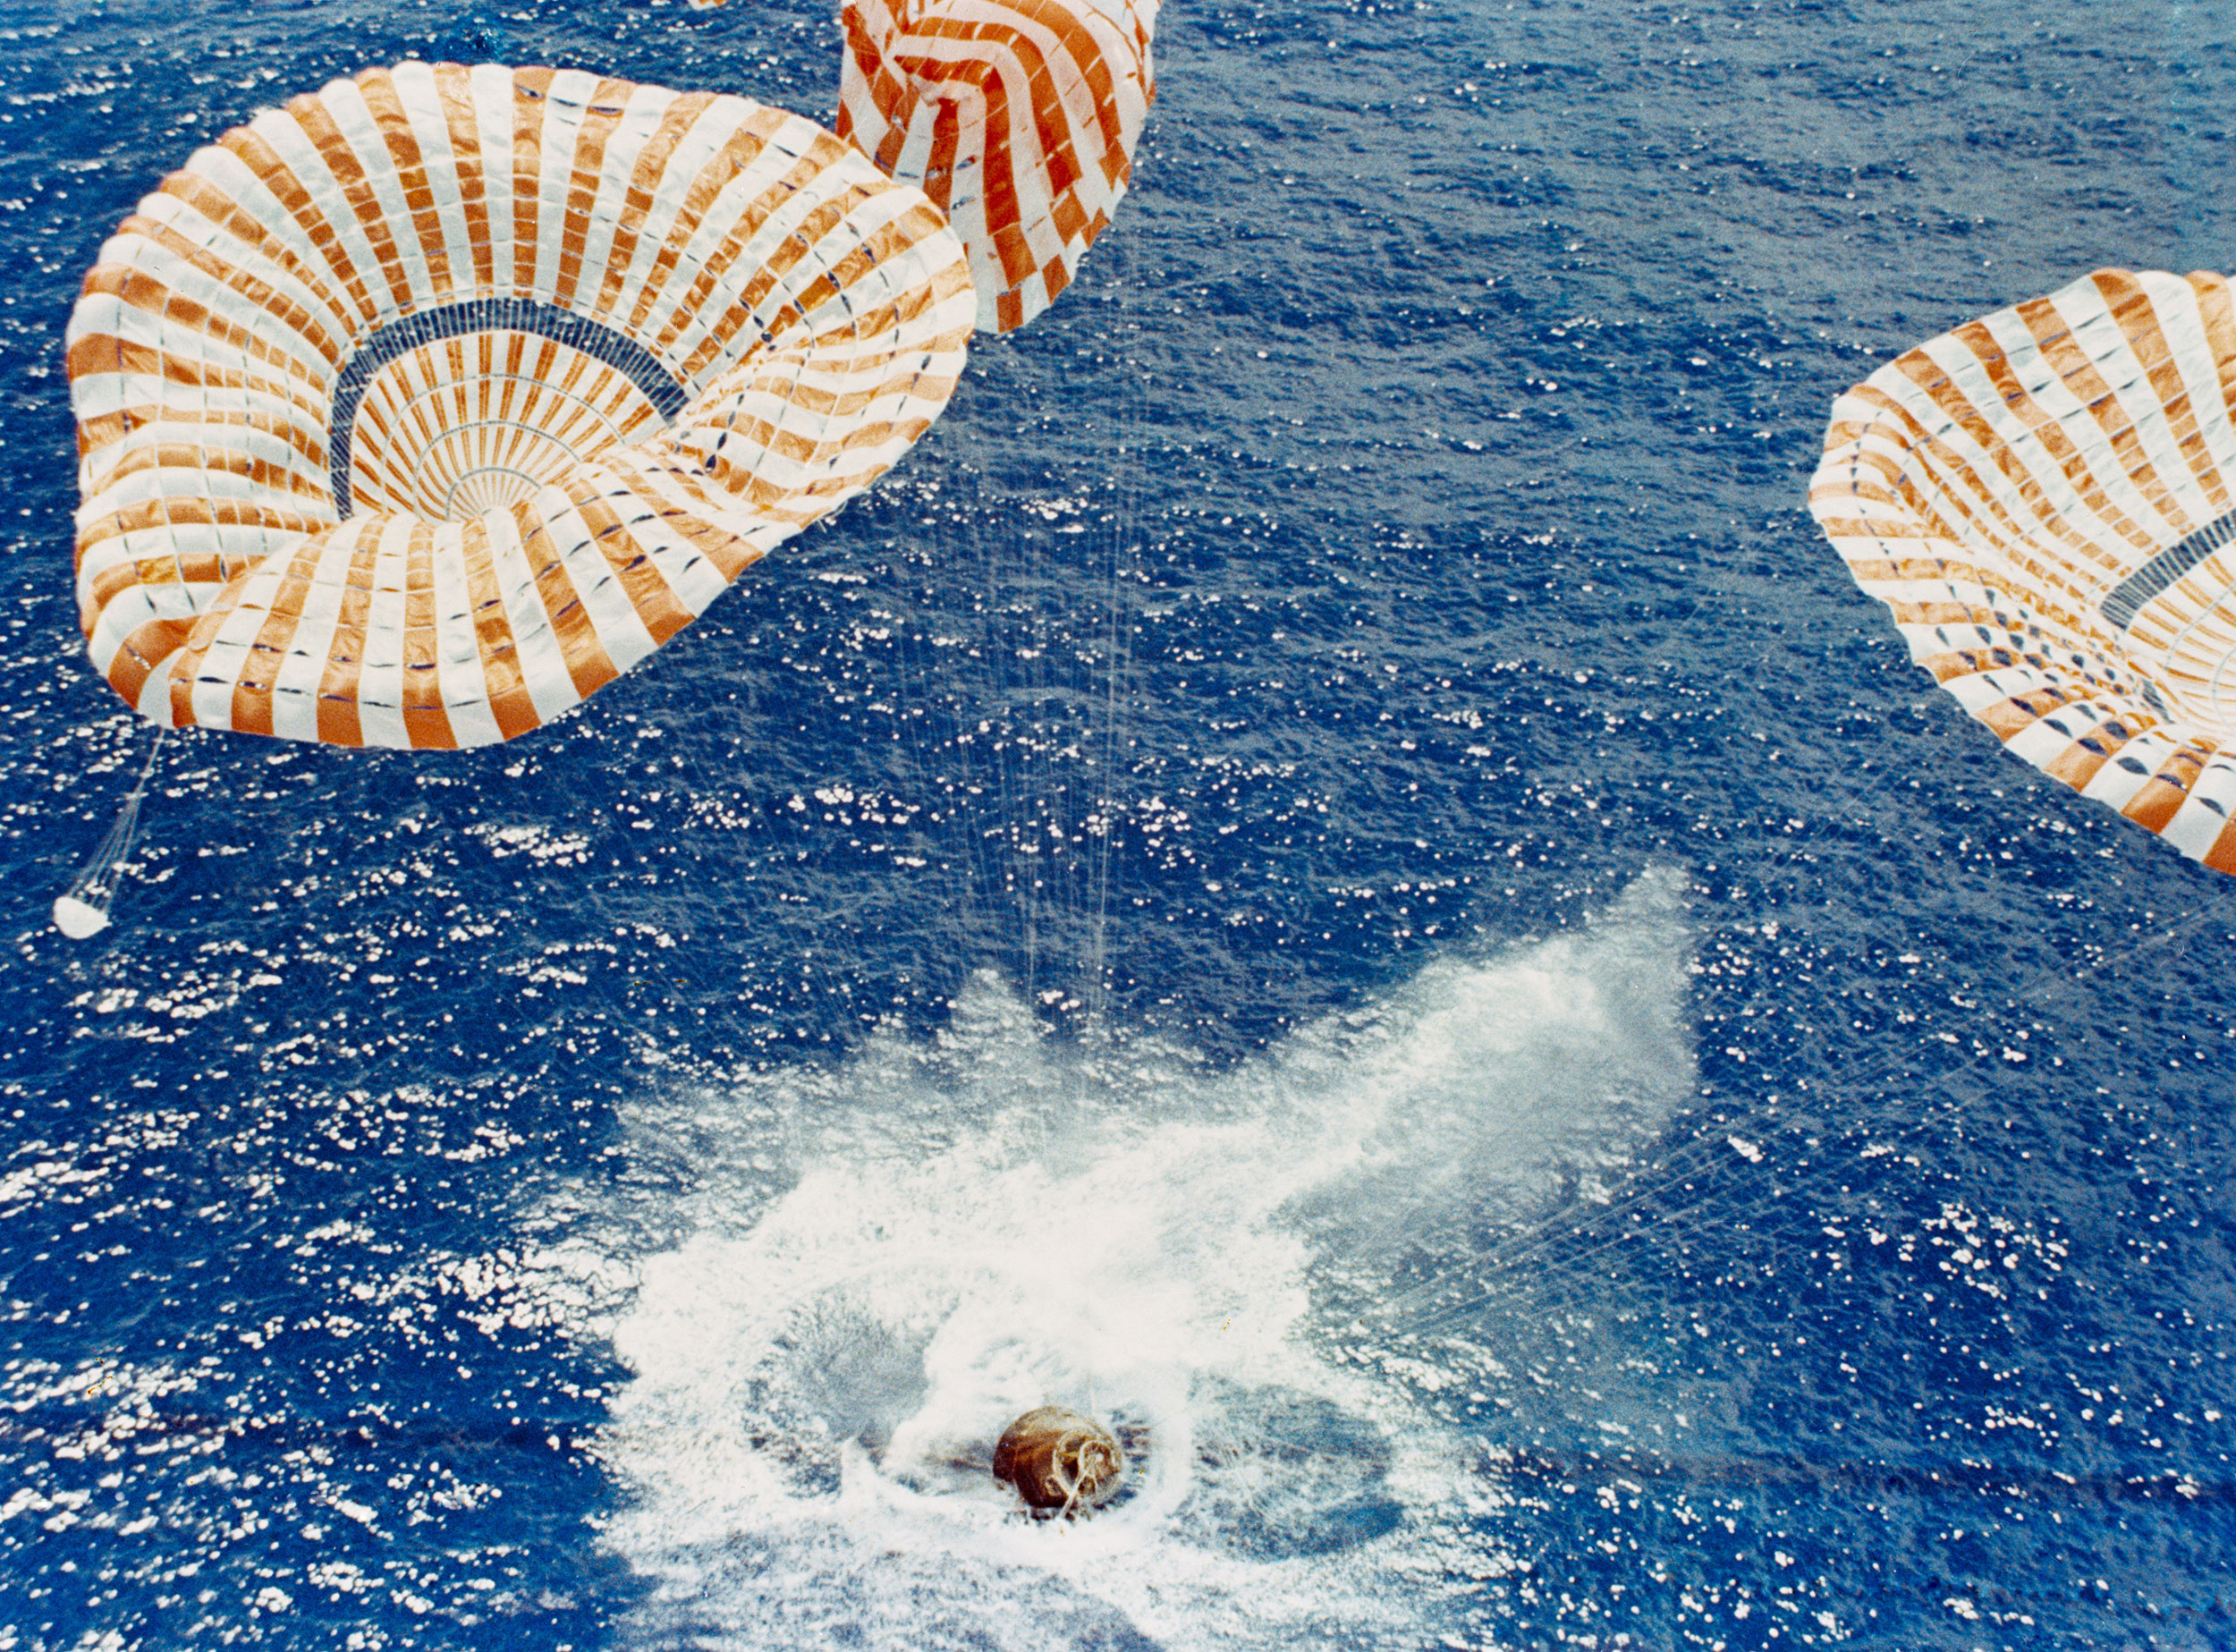 The Apollo 15 Command Module safely touches down in the mid-Pacific Ocean even though one of the three main parachutes failed to function properly. Credit: NASA